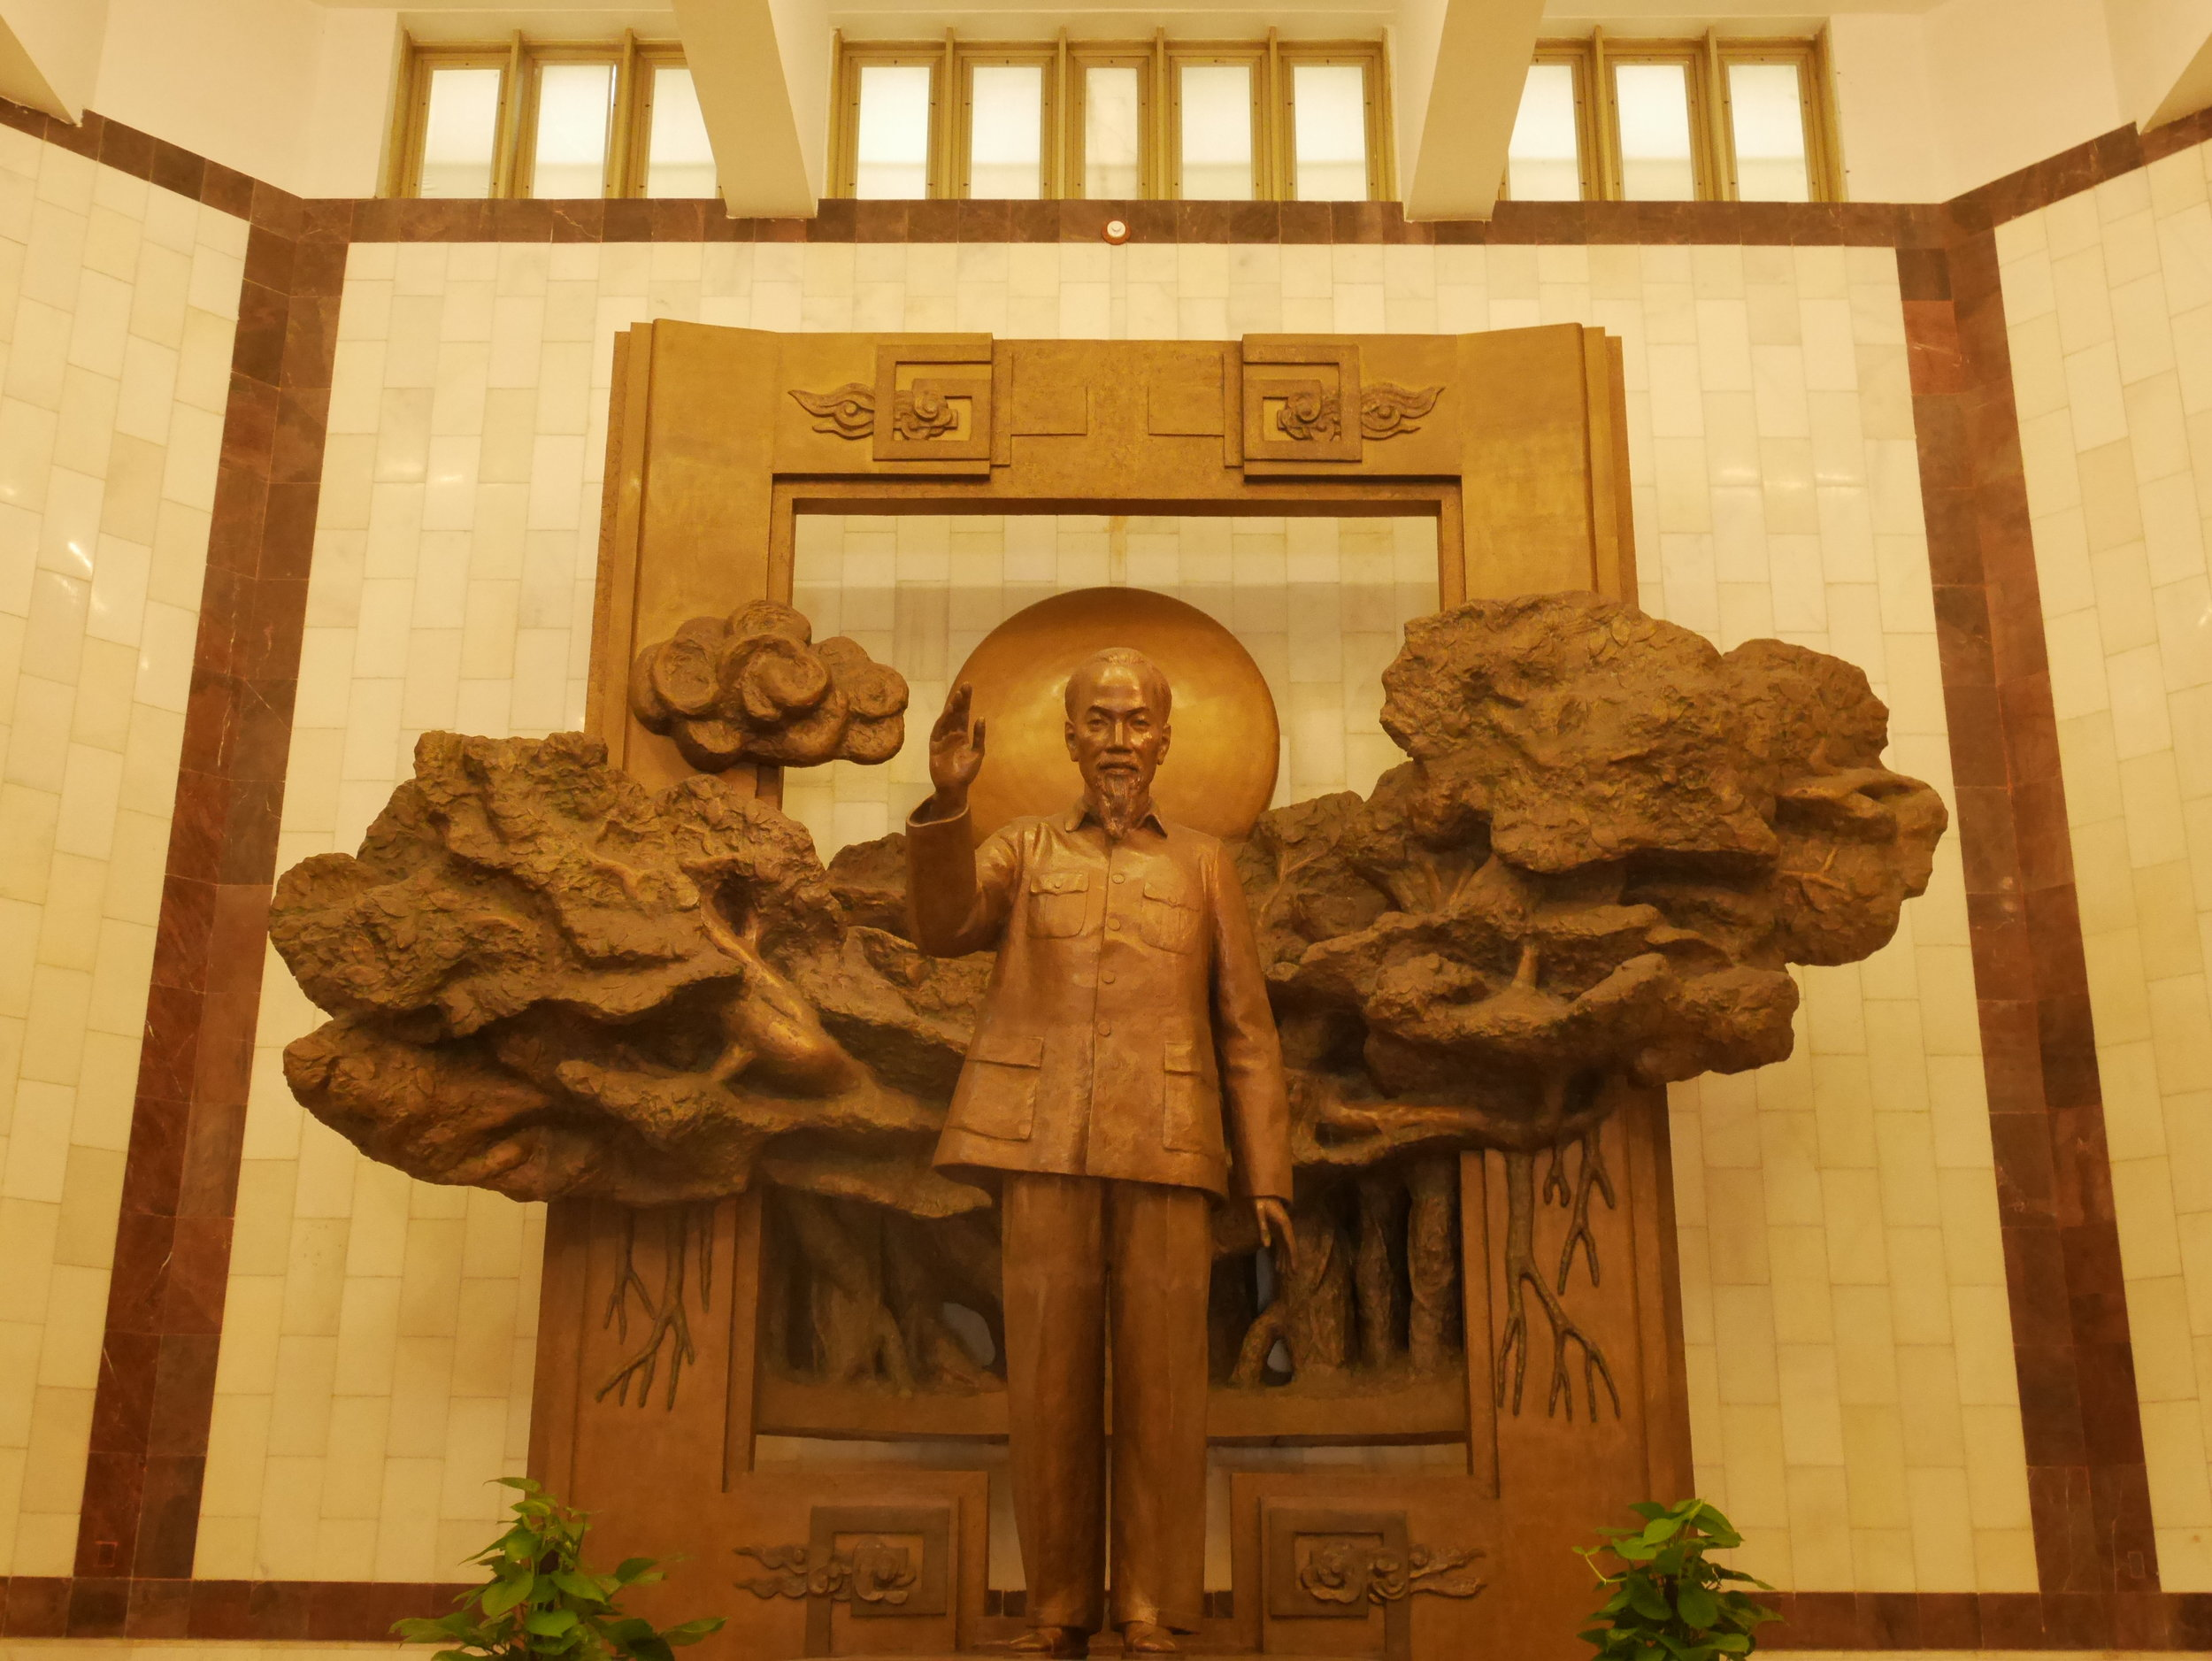 Statue of Ho Chi Minh inside the museum